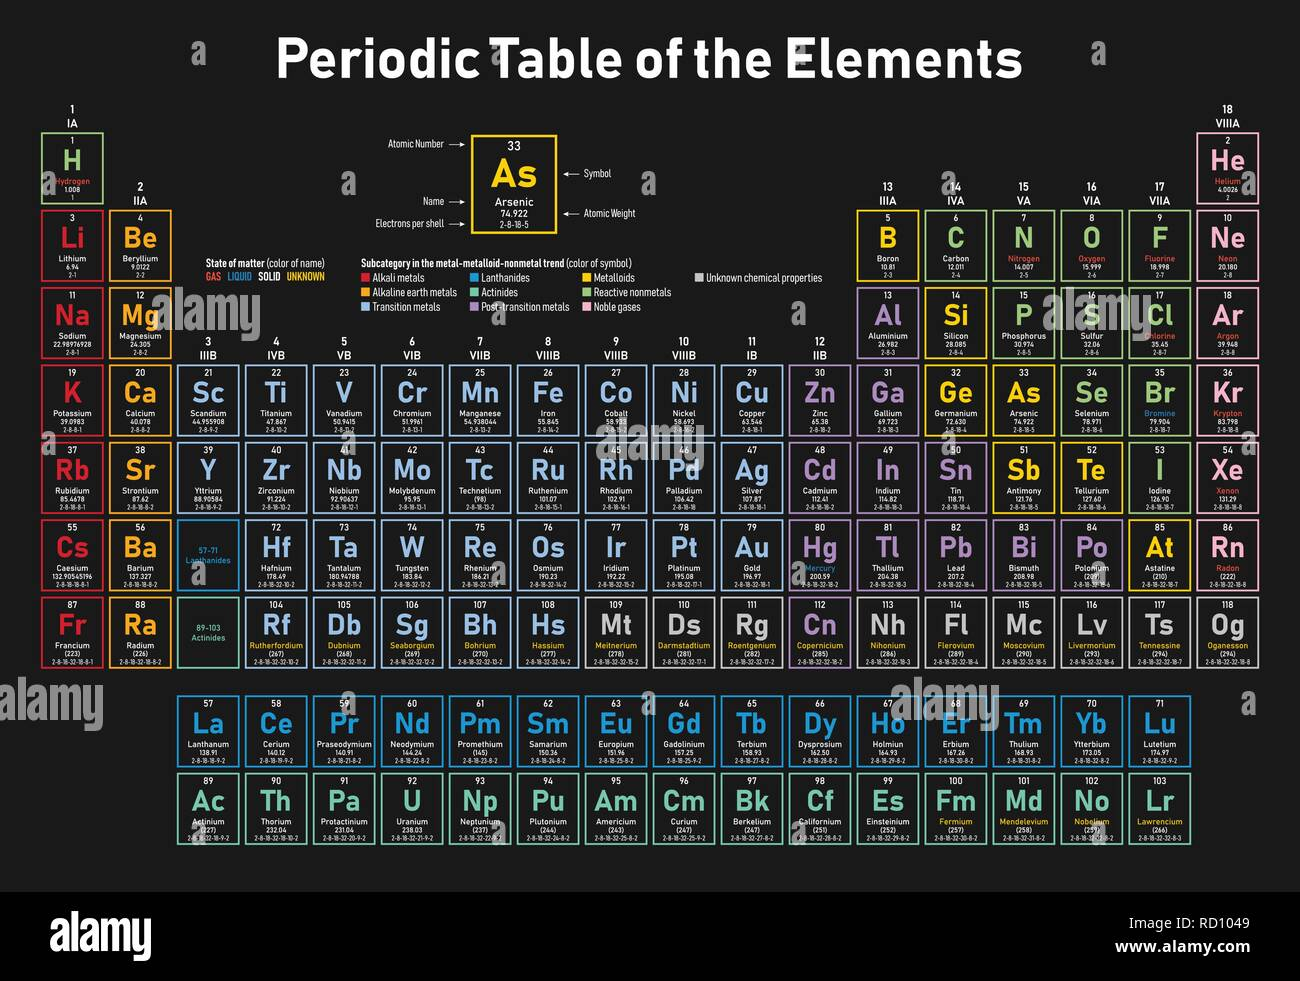 Colorful Periodic Table of the Elements - shows atomic number, symbol, name, atomic weight, electrons per shell, state of matter and element category - Stock Image